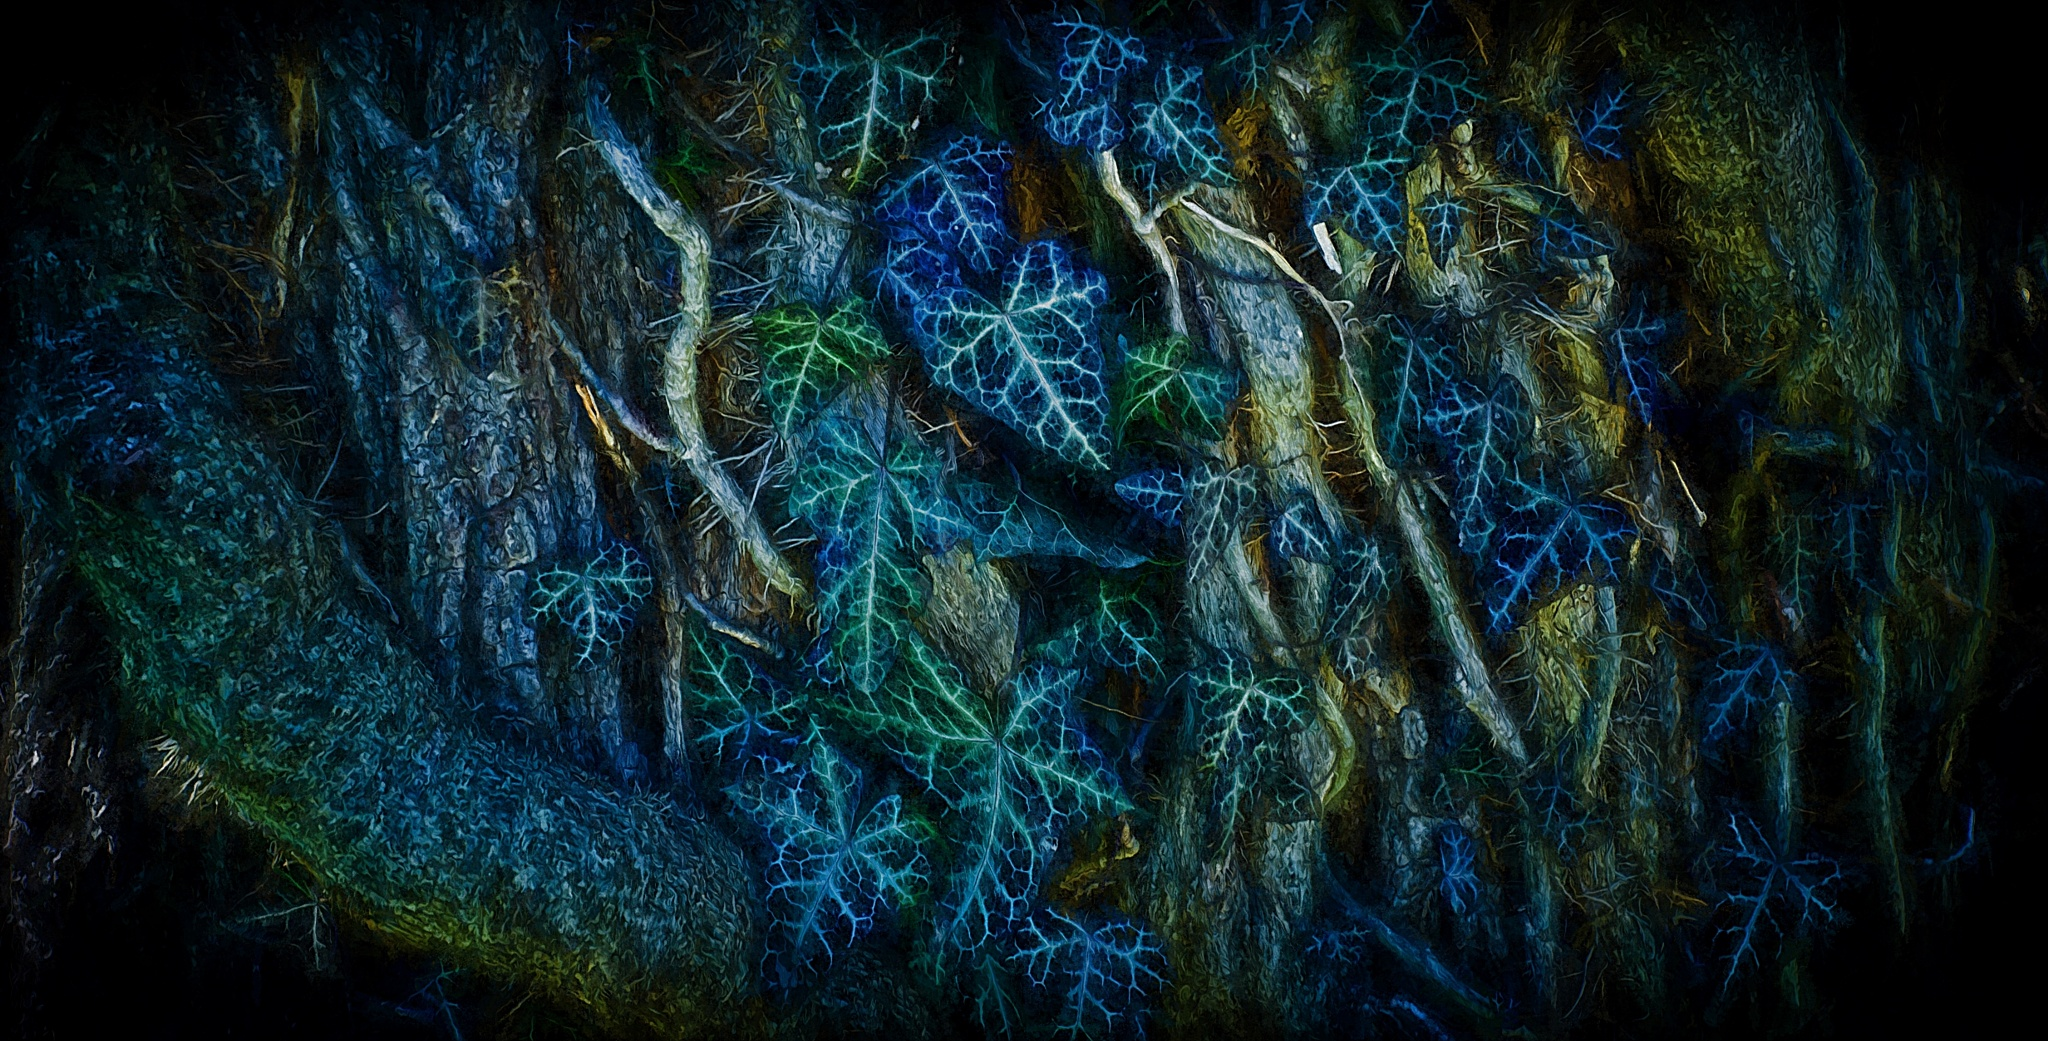 Creeper 2885 by JohnEllingson